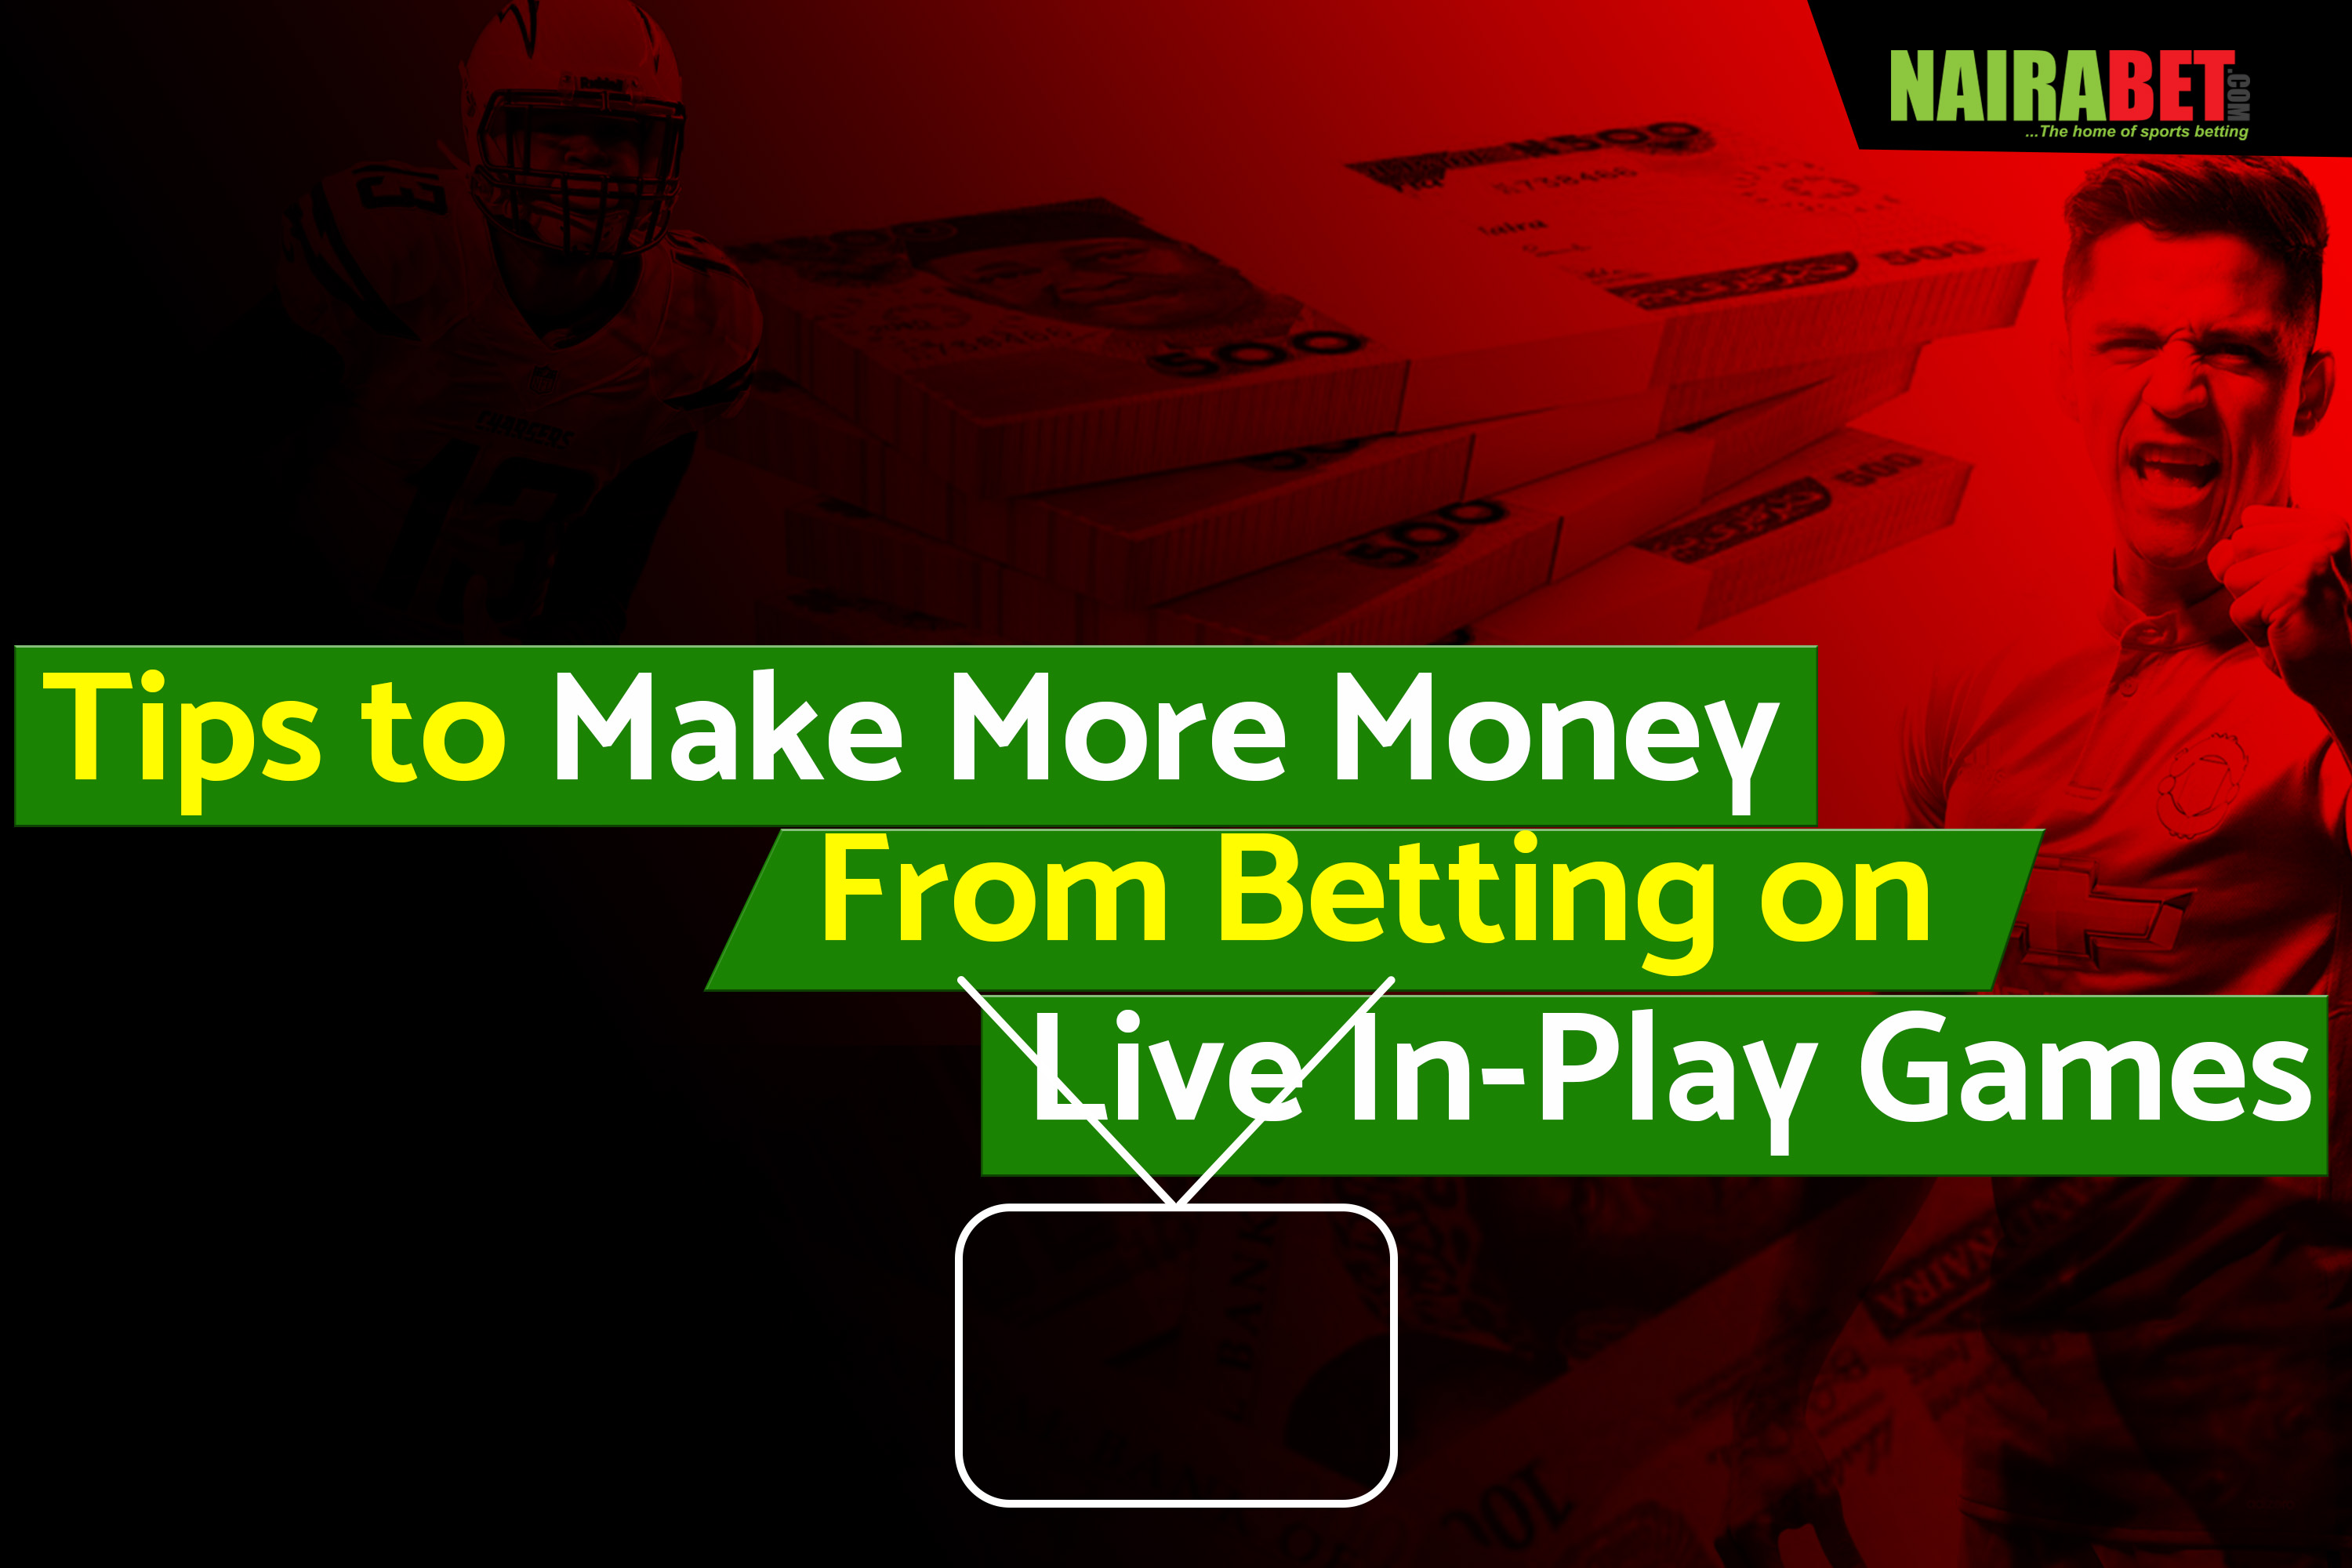 3 Tips to Make More Money from Betting on Live In-Play Games